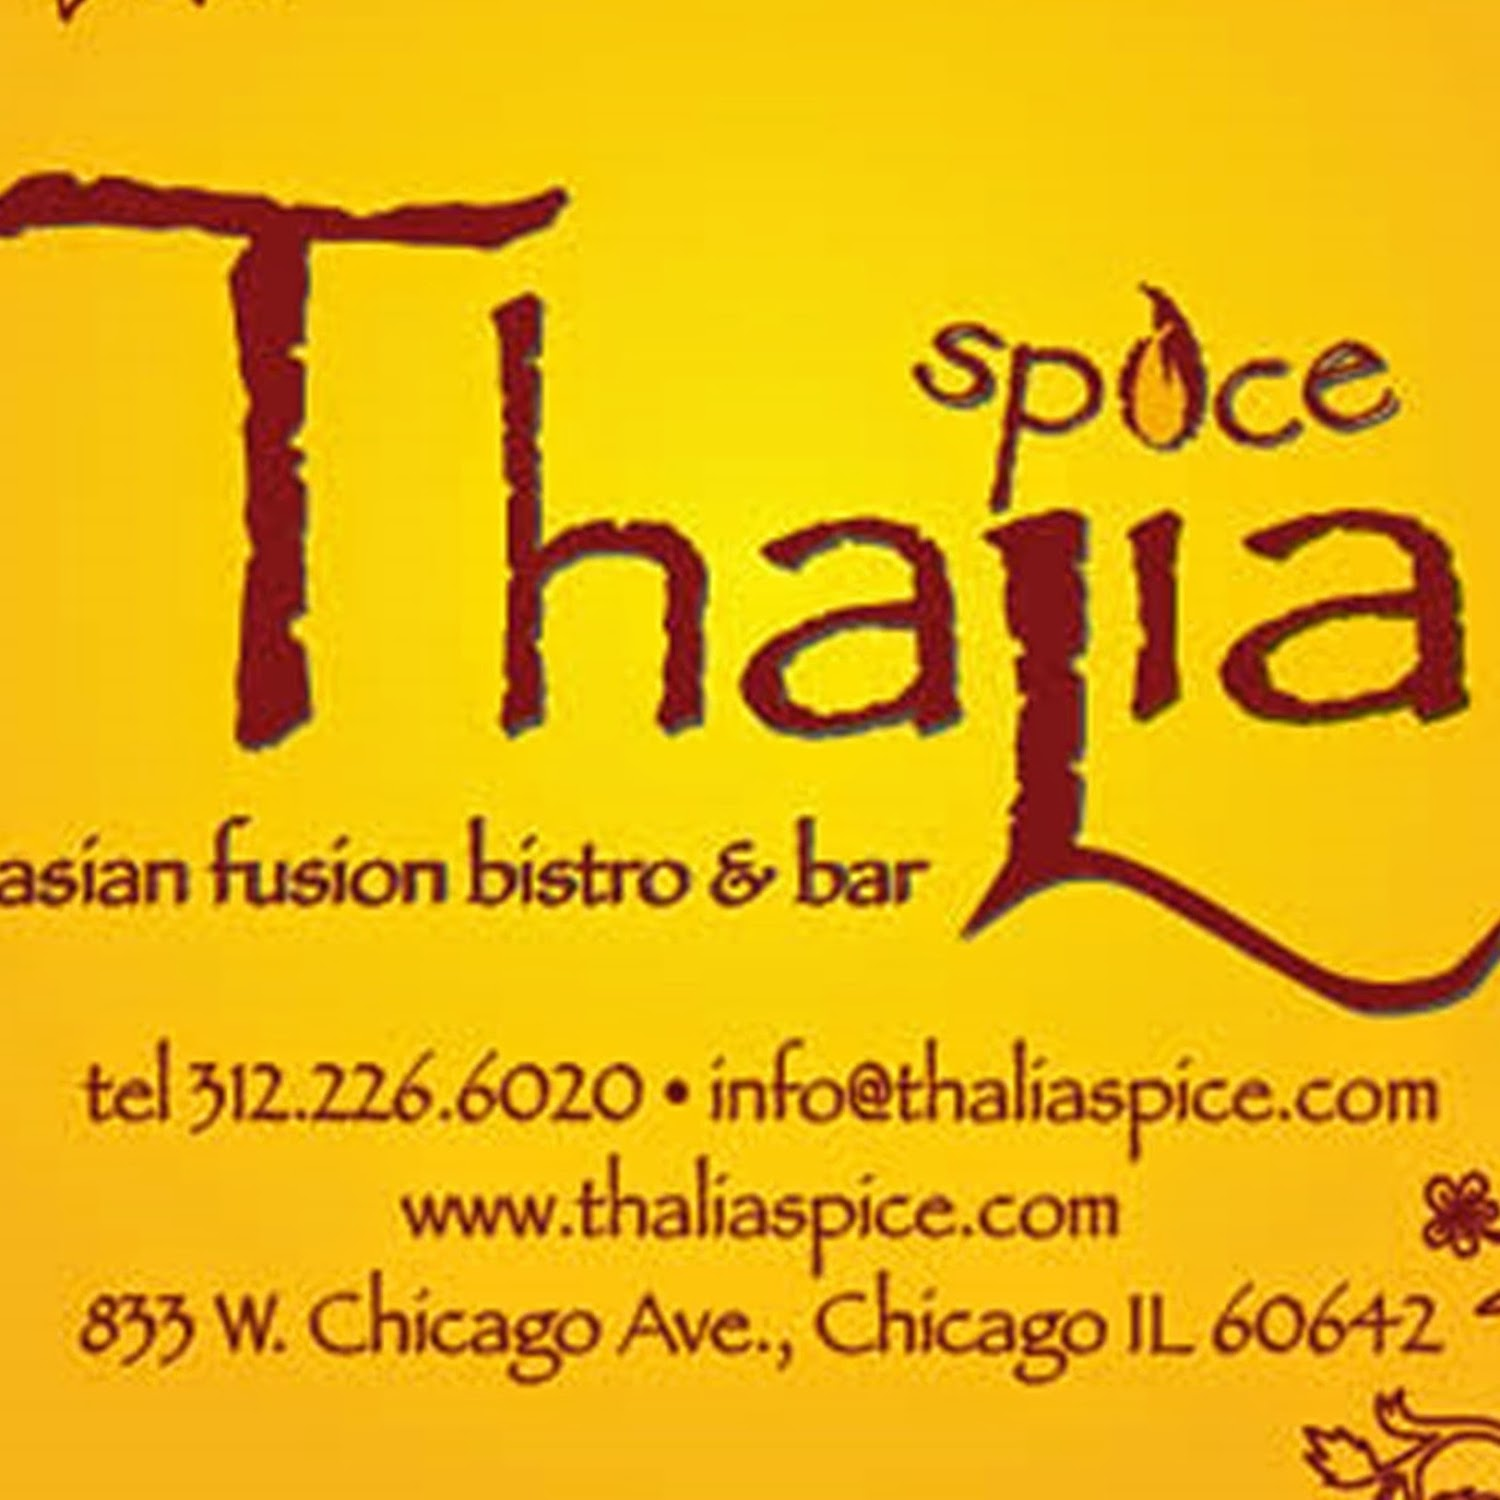 Thalia Spice Asian Fusion Bistro & Bar